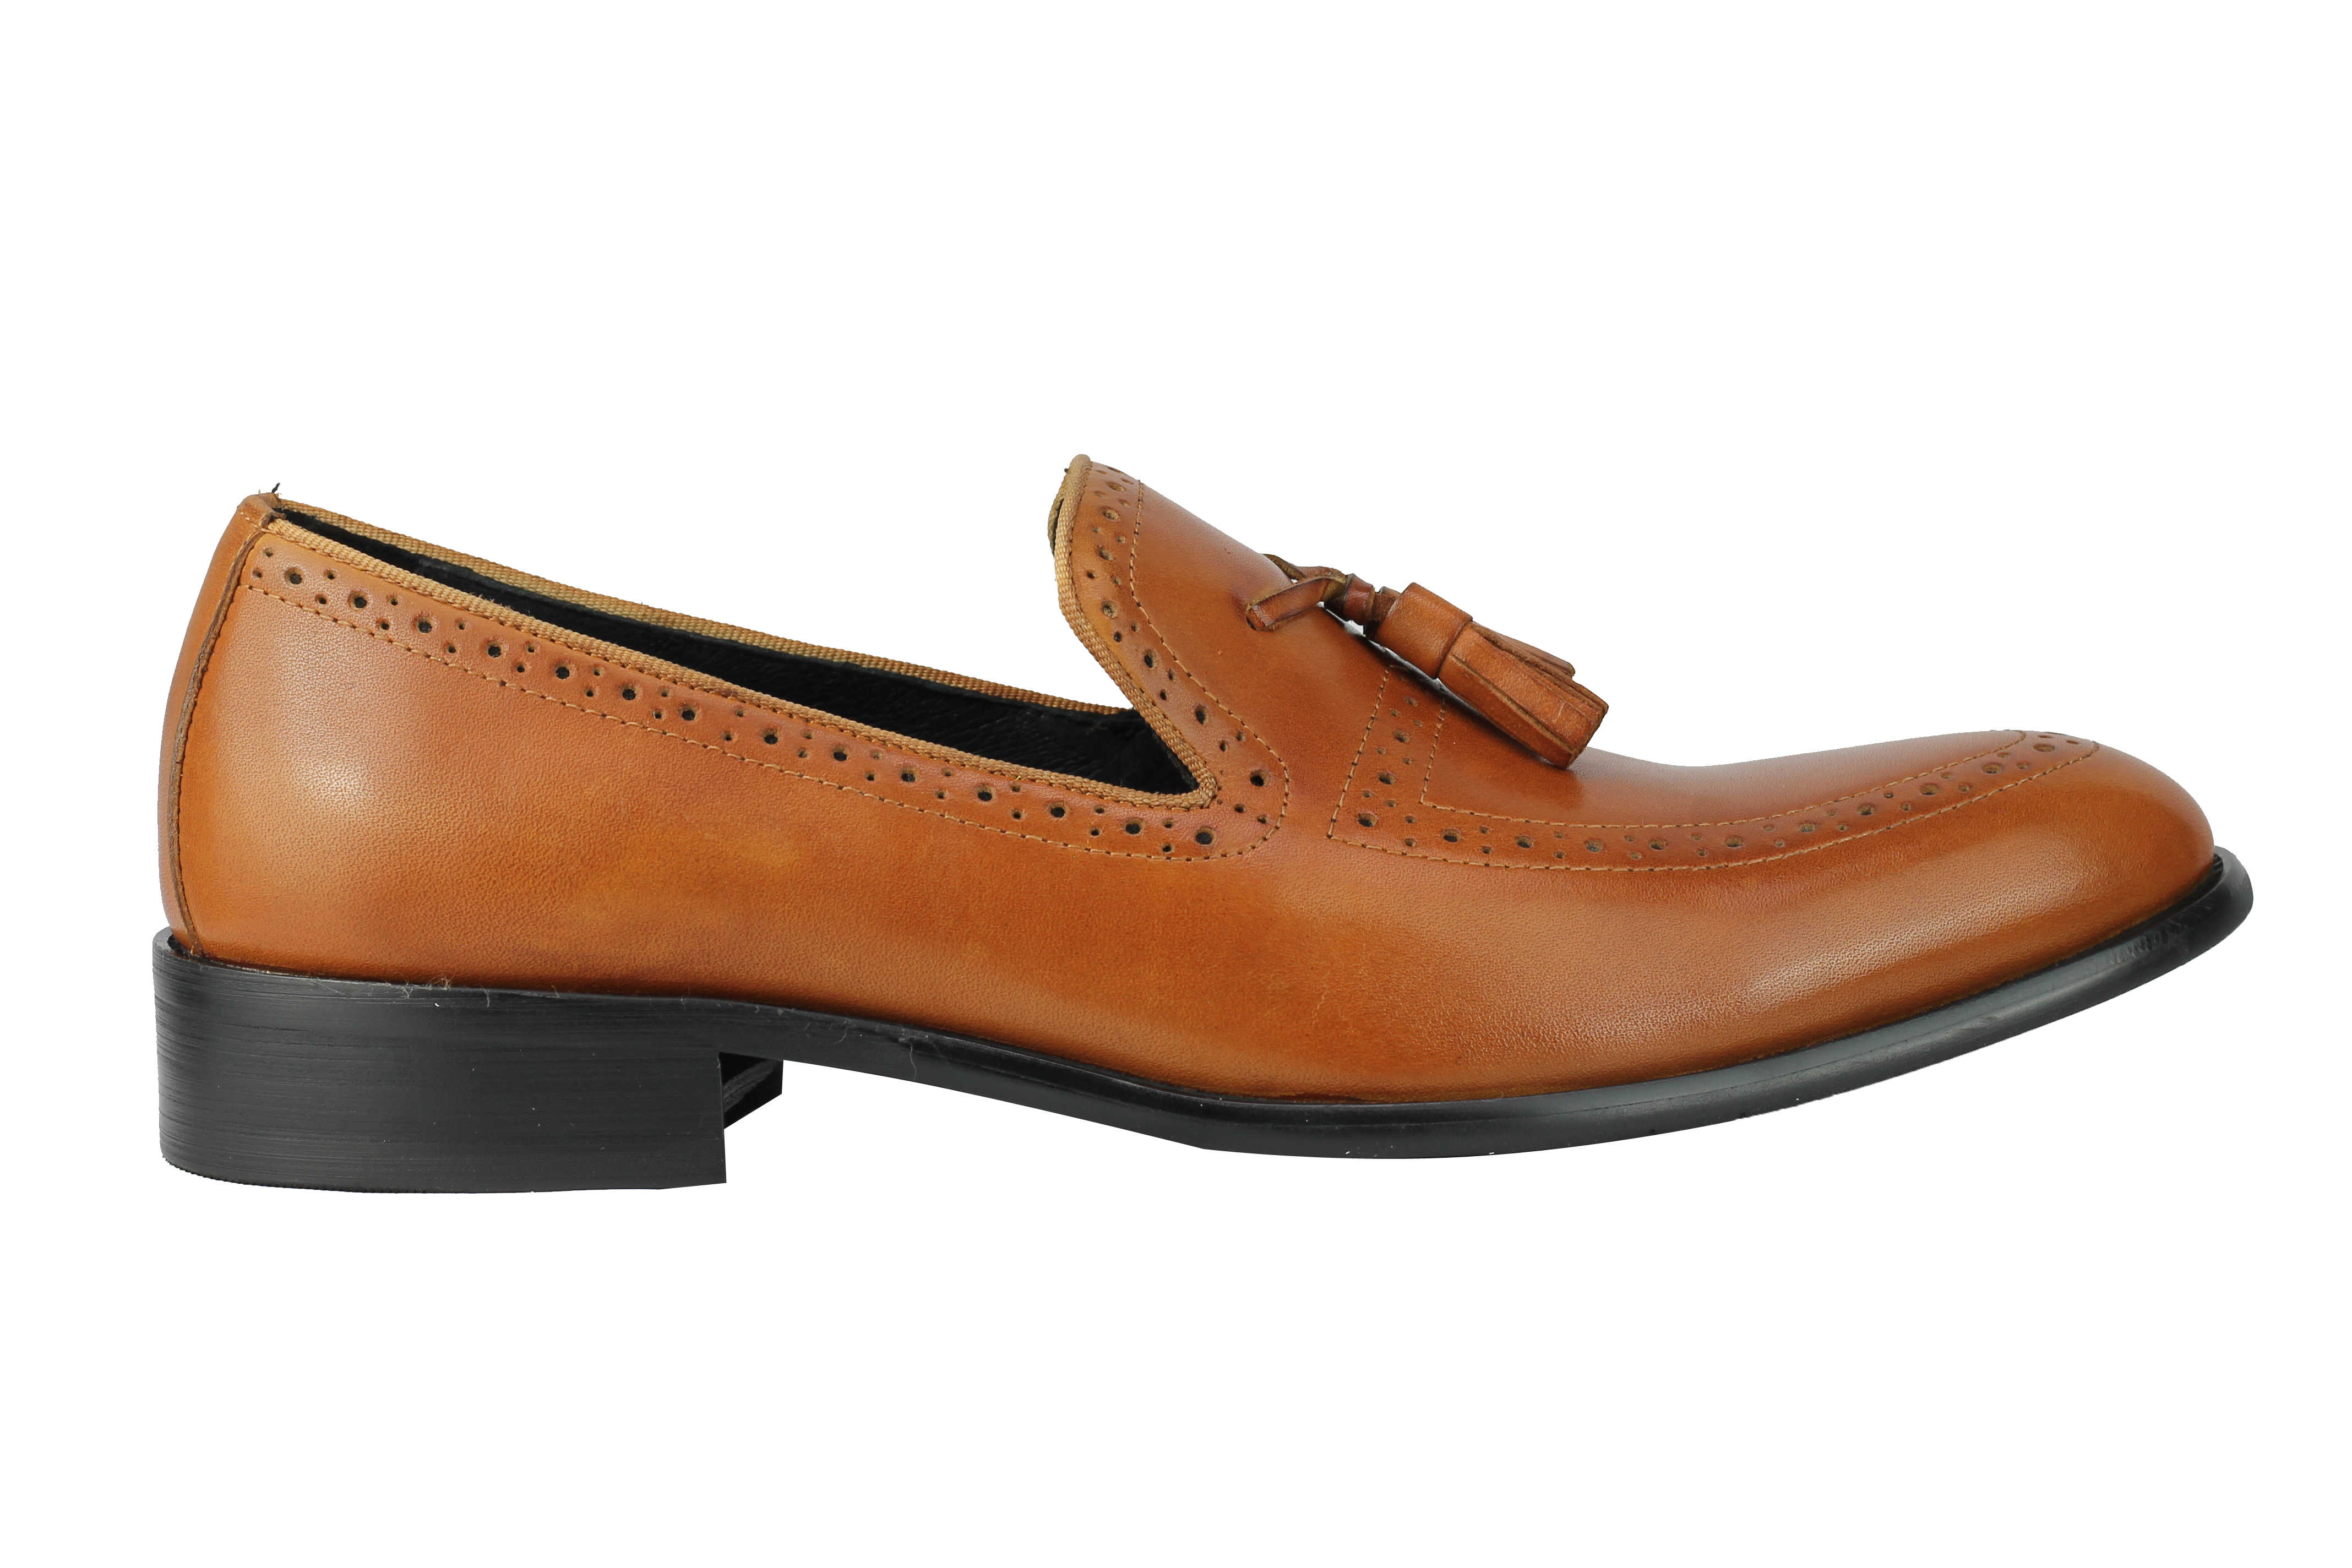 Mens-Real-Leather-Tassel-Loafers-Retro-Hand-Made-Brogue-Slip-on-Dress-Shoes thumbnail 17